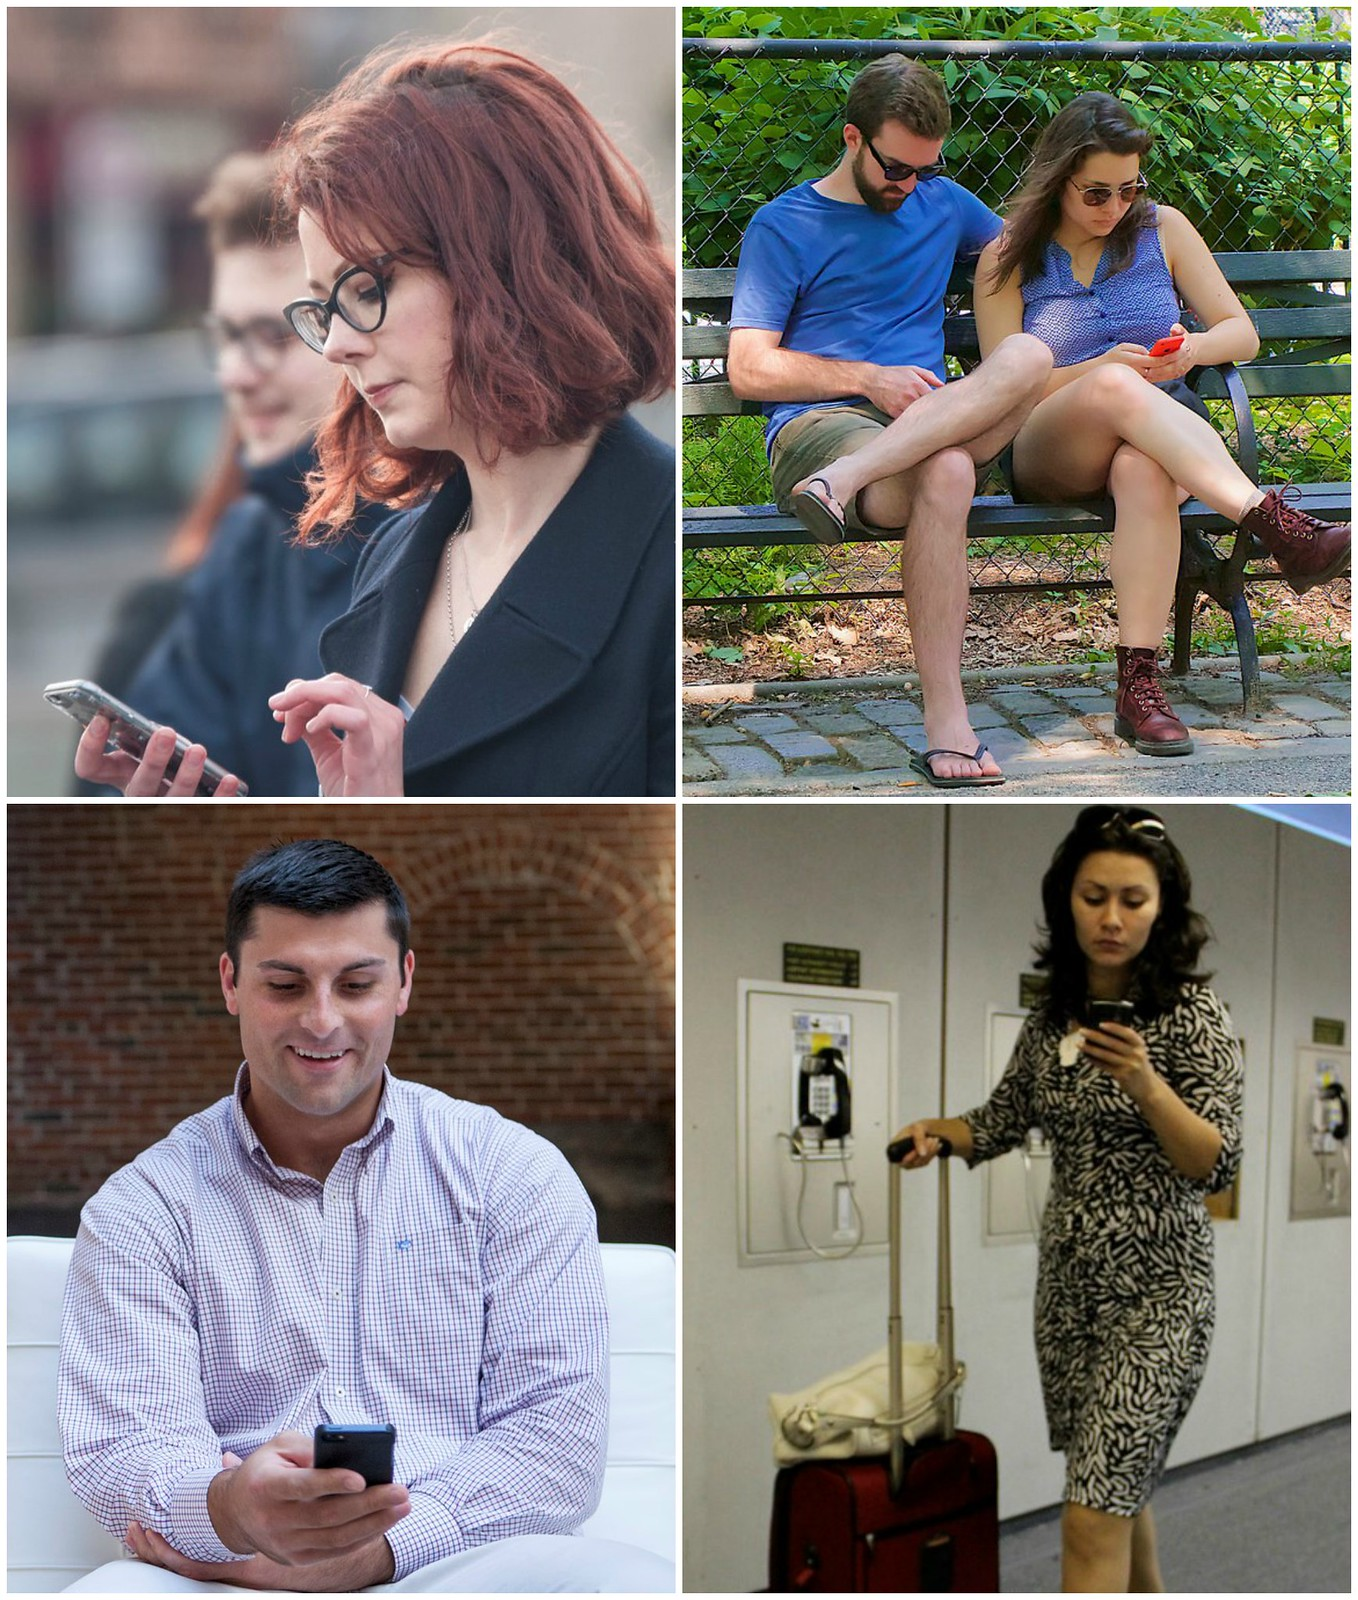 People using smartphones. Photo credits: Matthew Hurst, Ed Yourdon, Vladimir Yaitskiy.